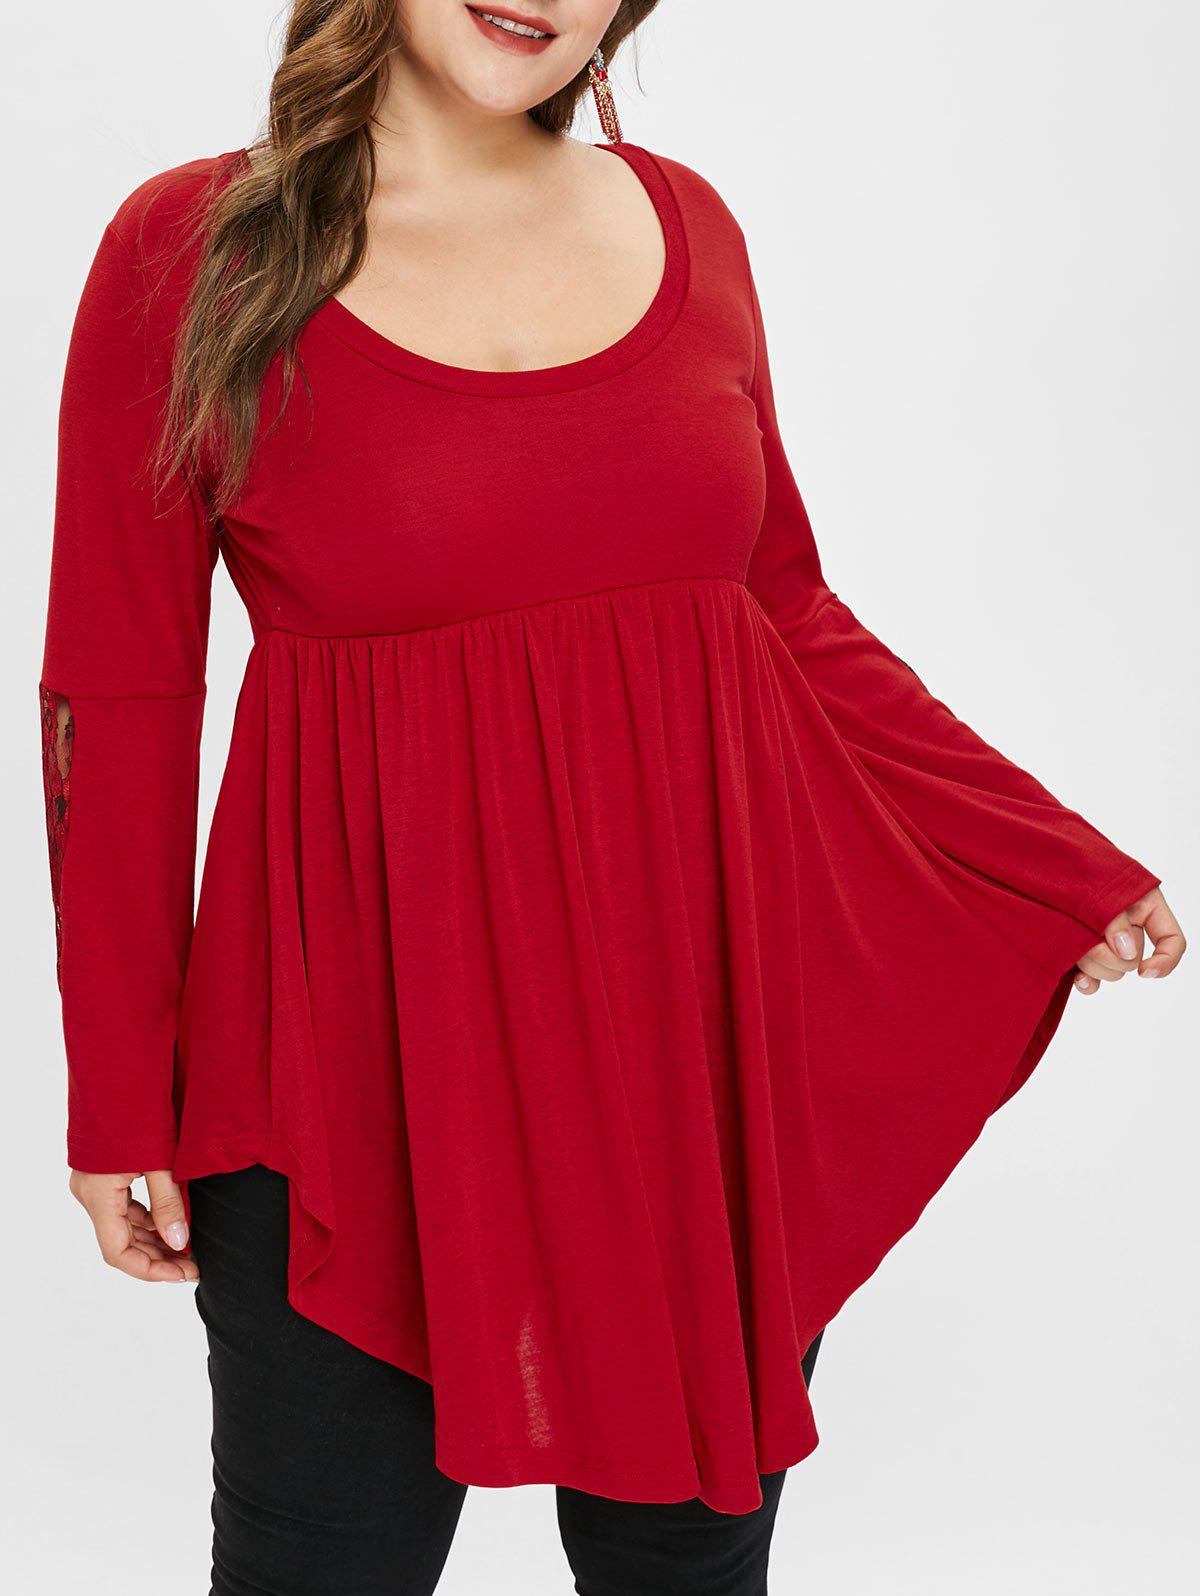 Plus Size Asymmetric Flare Sleeves Tee with Lace